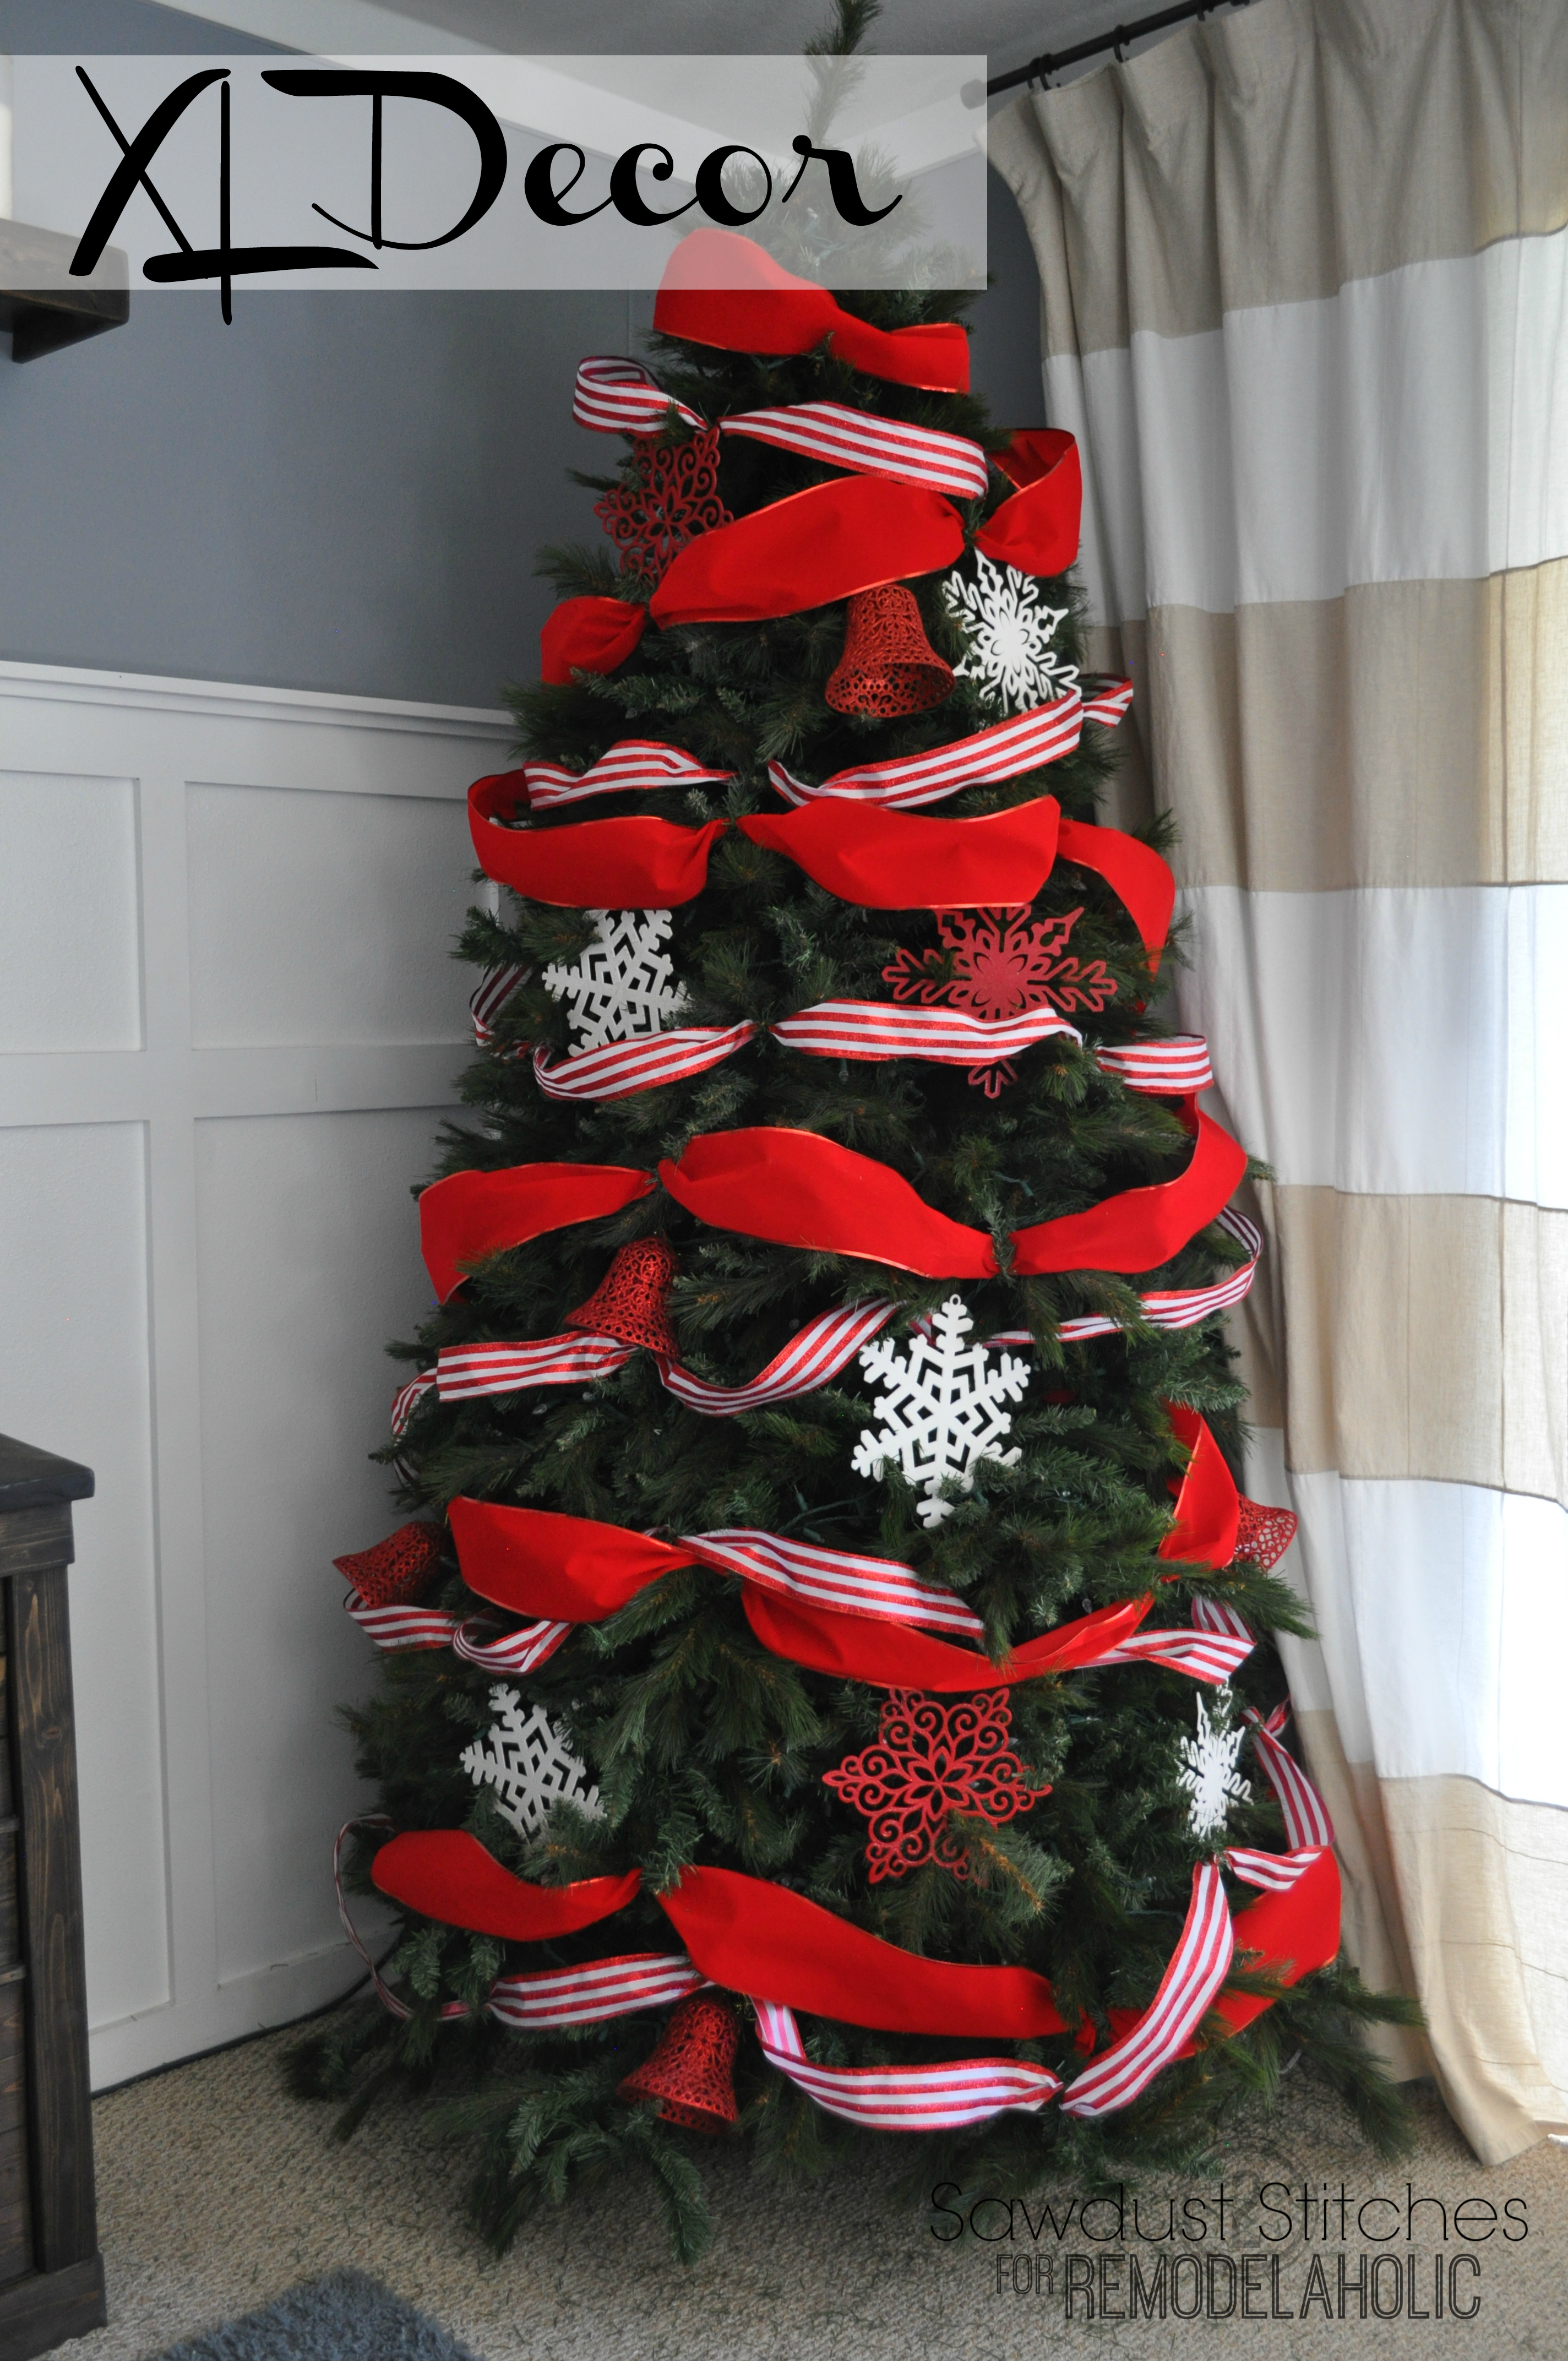 Remodelaholic | How to Decorate a Christmas Tree: A ...